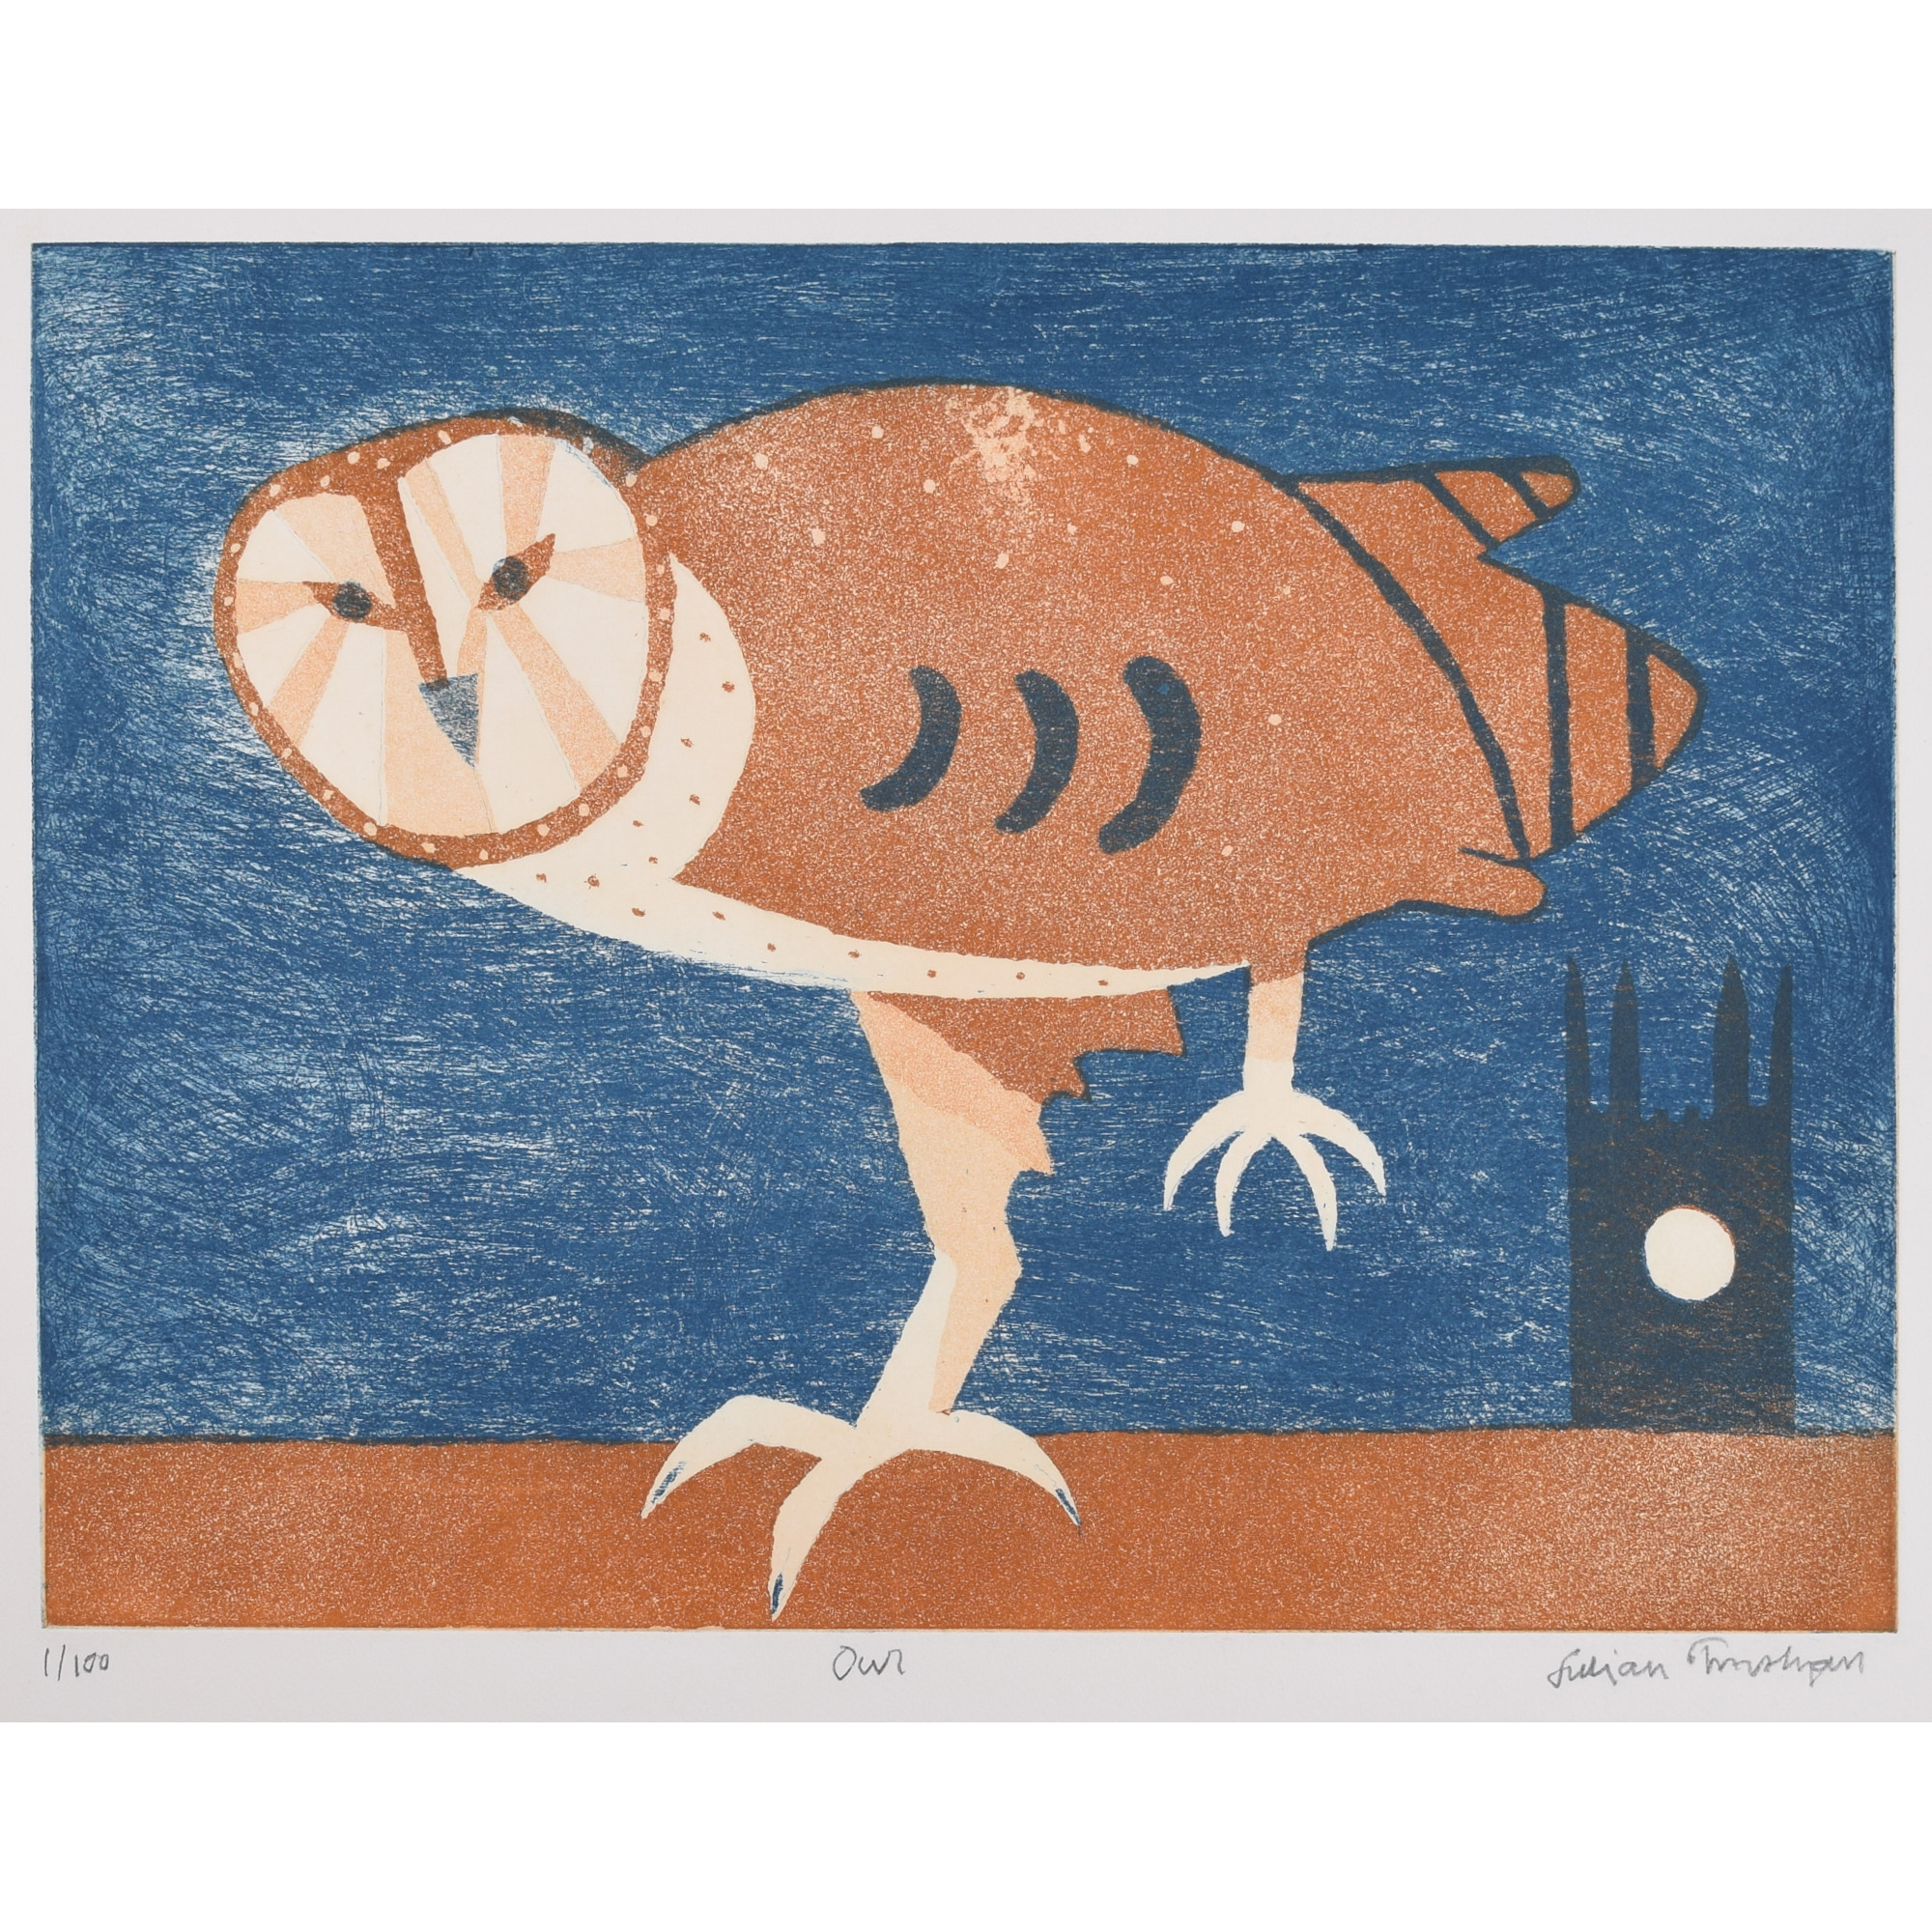 Julian Trevelyan Owl print etching aquatint for sale